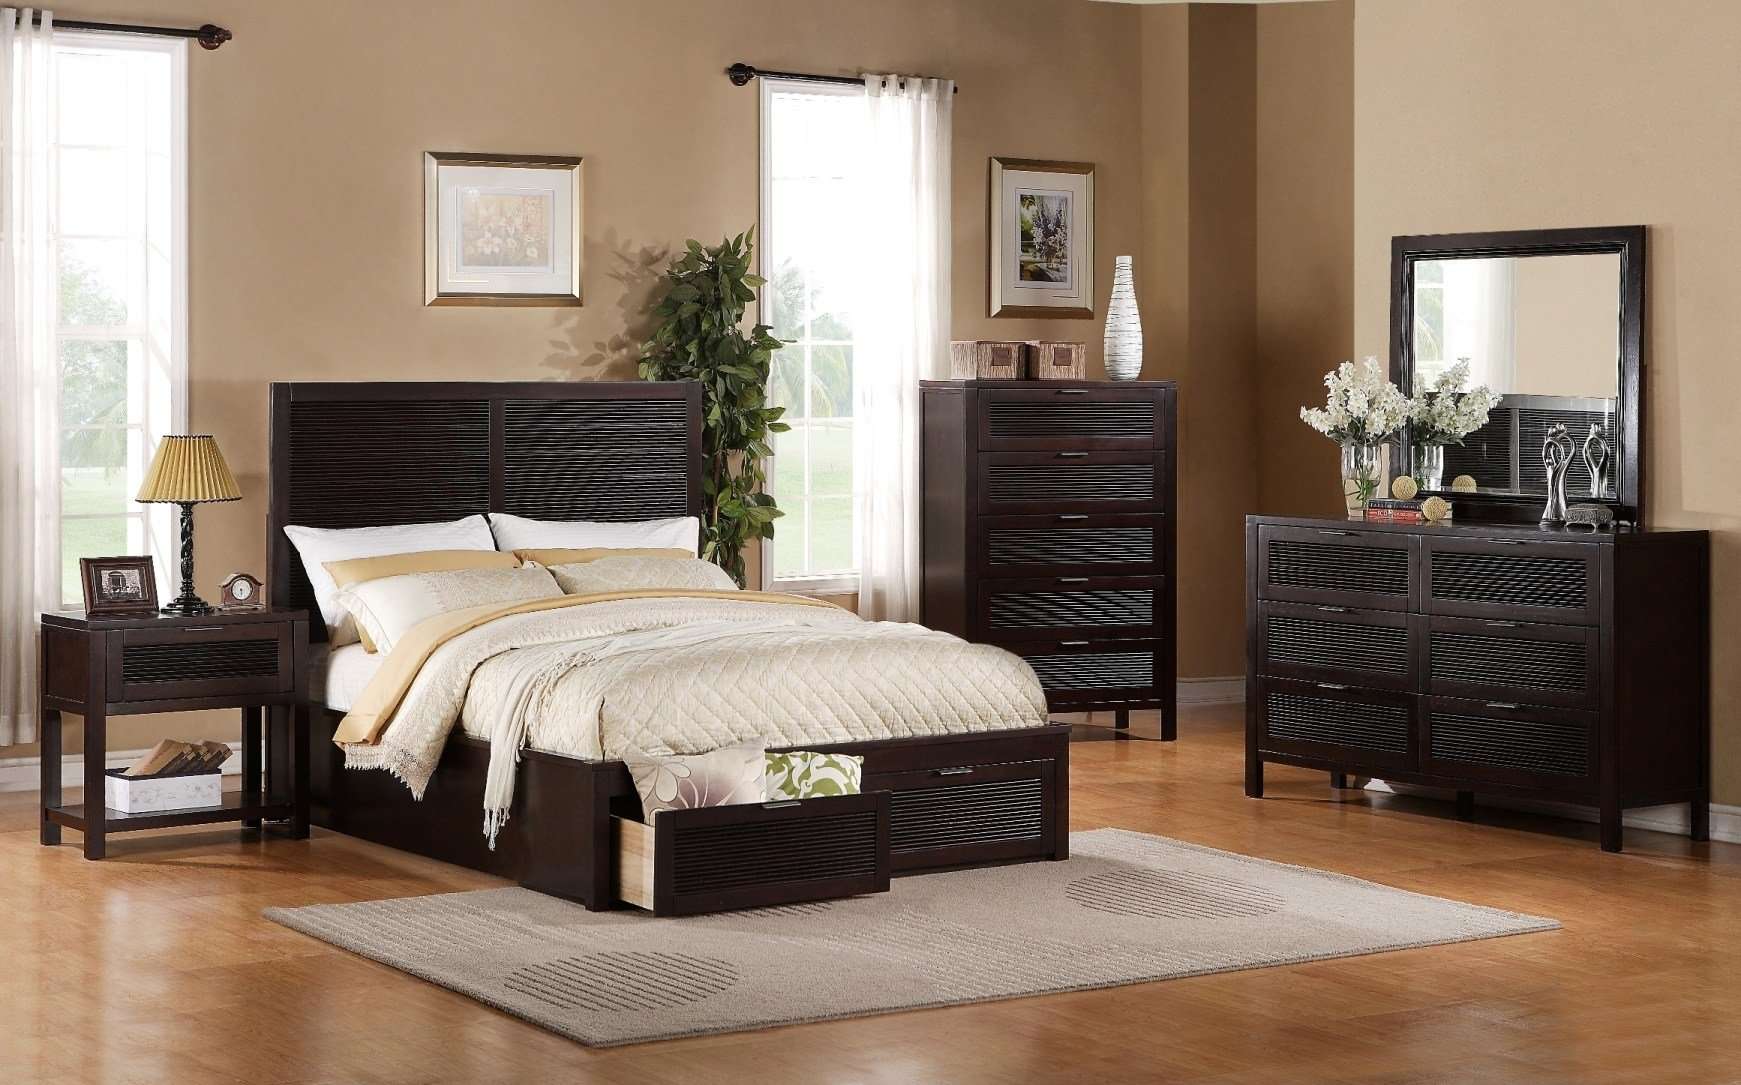 Best 7 Average Cost Of King Size Bedroom Set Facefabskin Com With Pictures